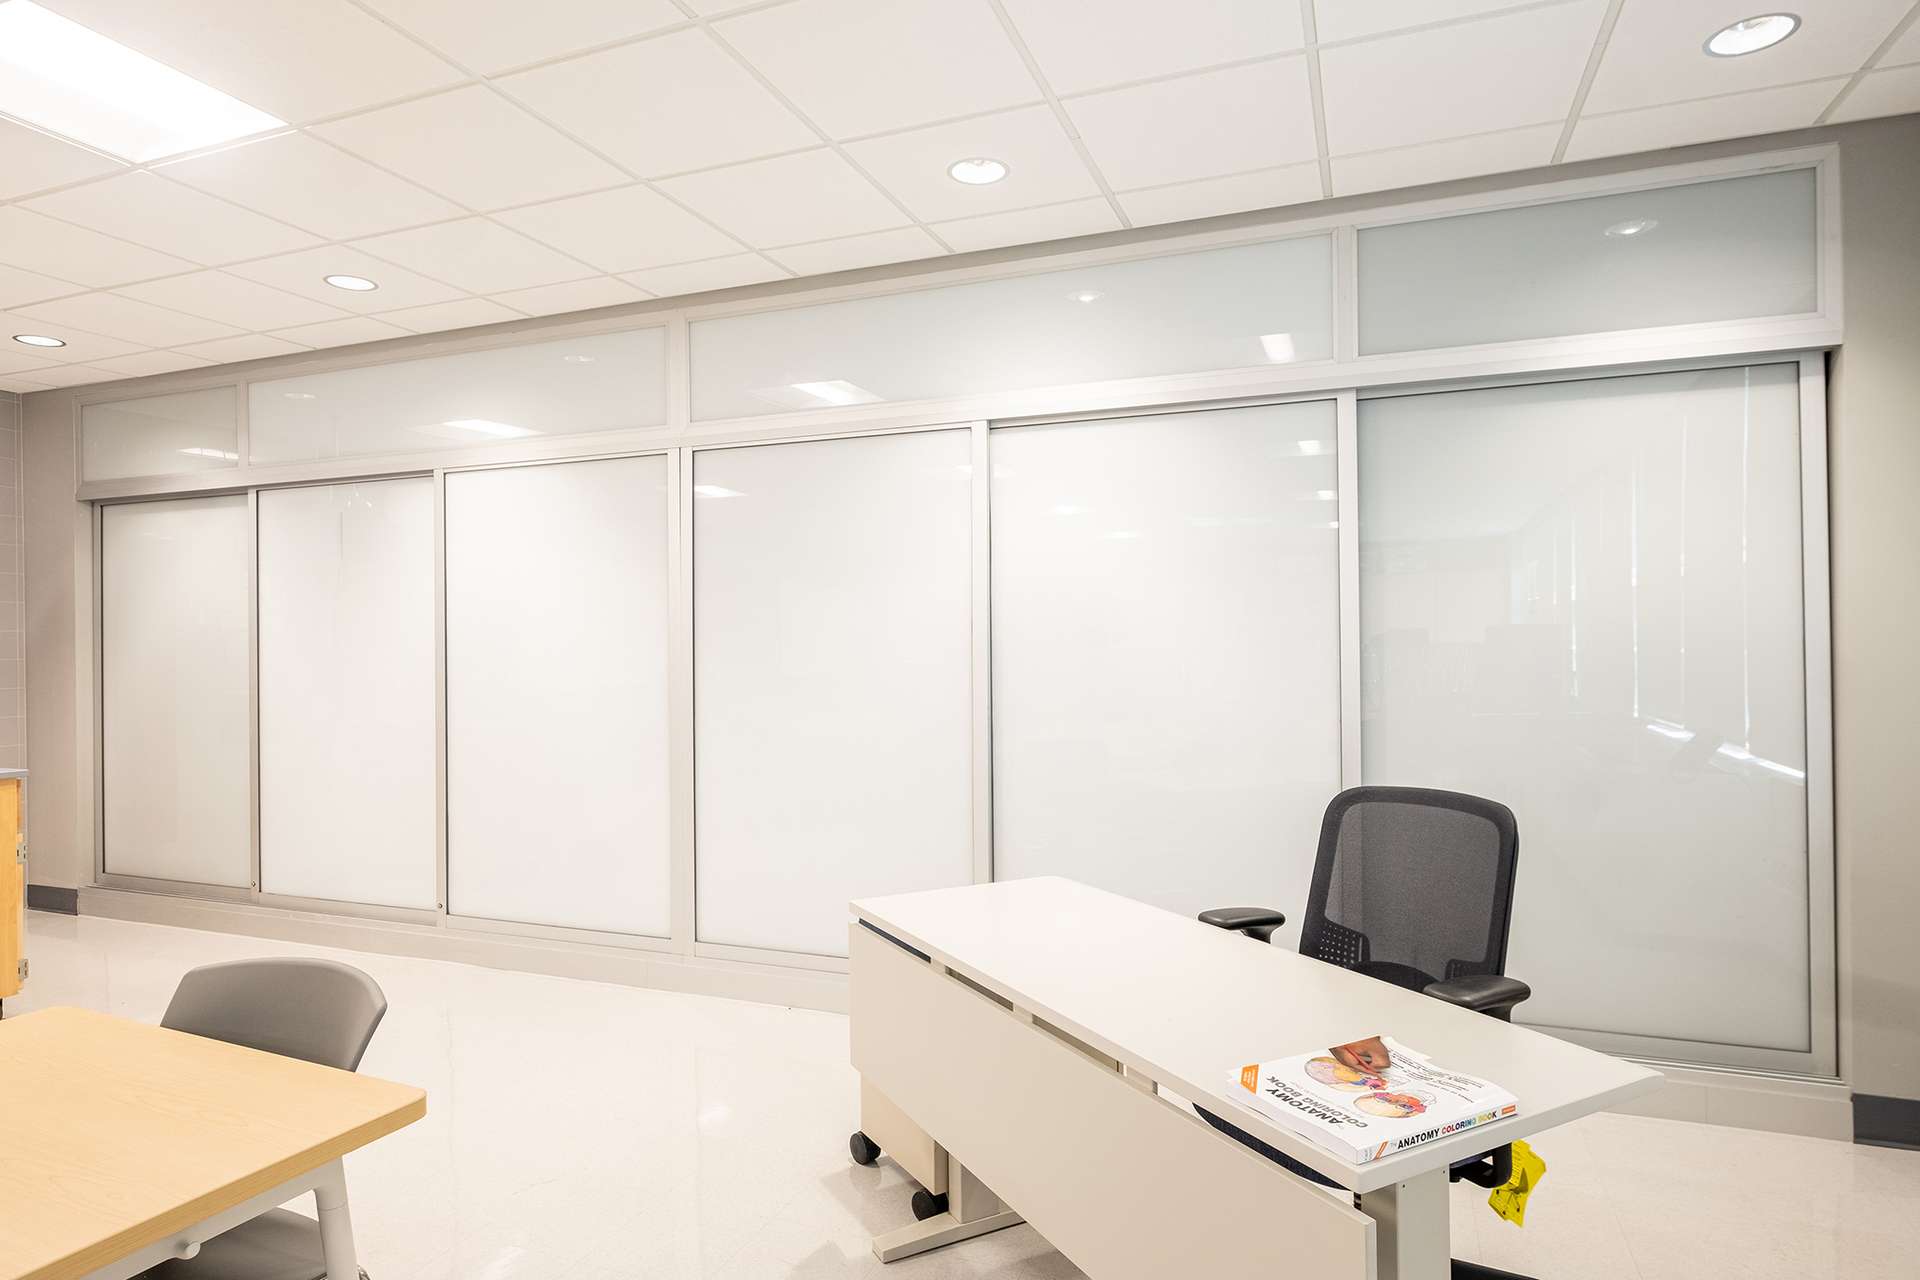 Sliding glass sliding doors create a versatile space for work and collaboration between peers and teachers.